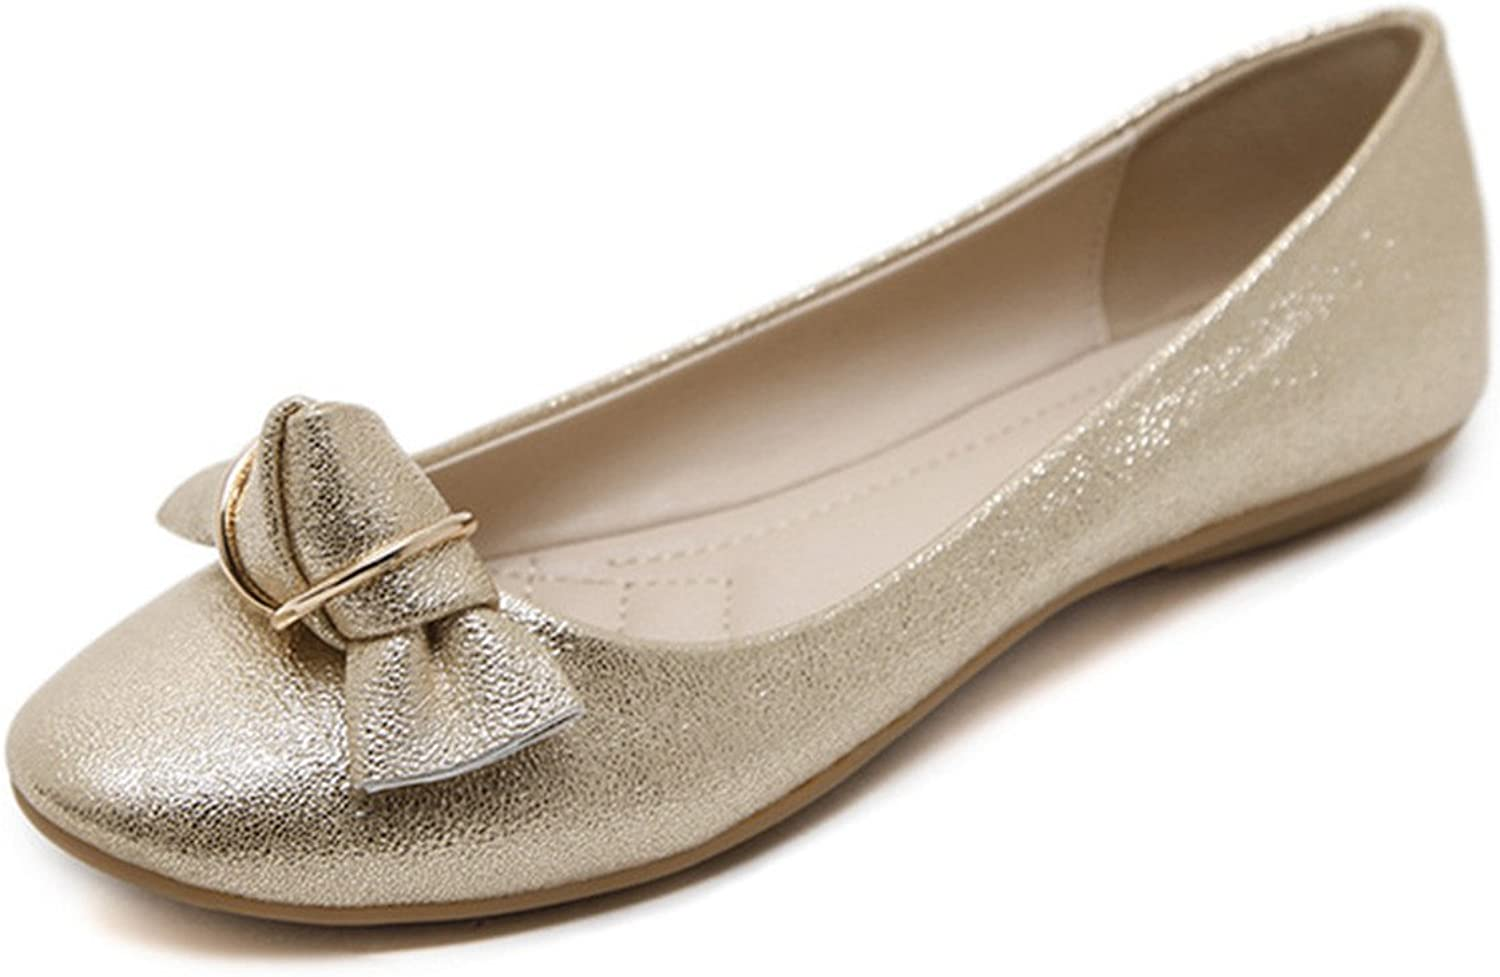 Women's Ballet Flats, Bowknot gold bluee Pointed Toe Dressy shoes